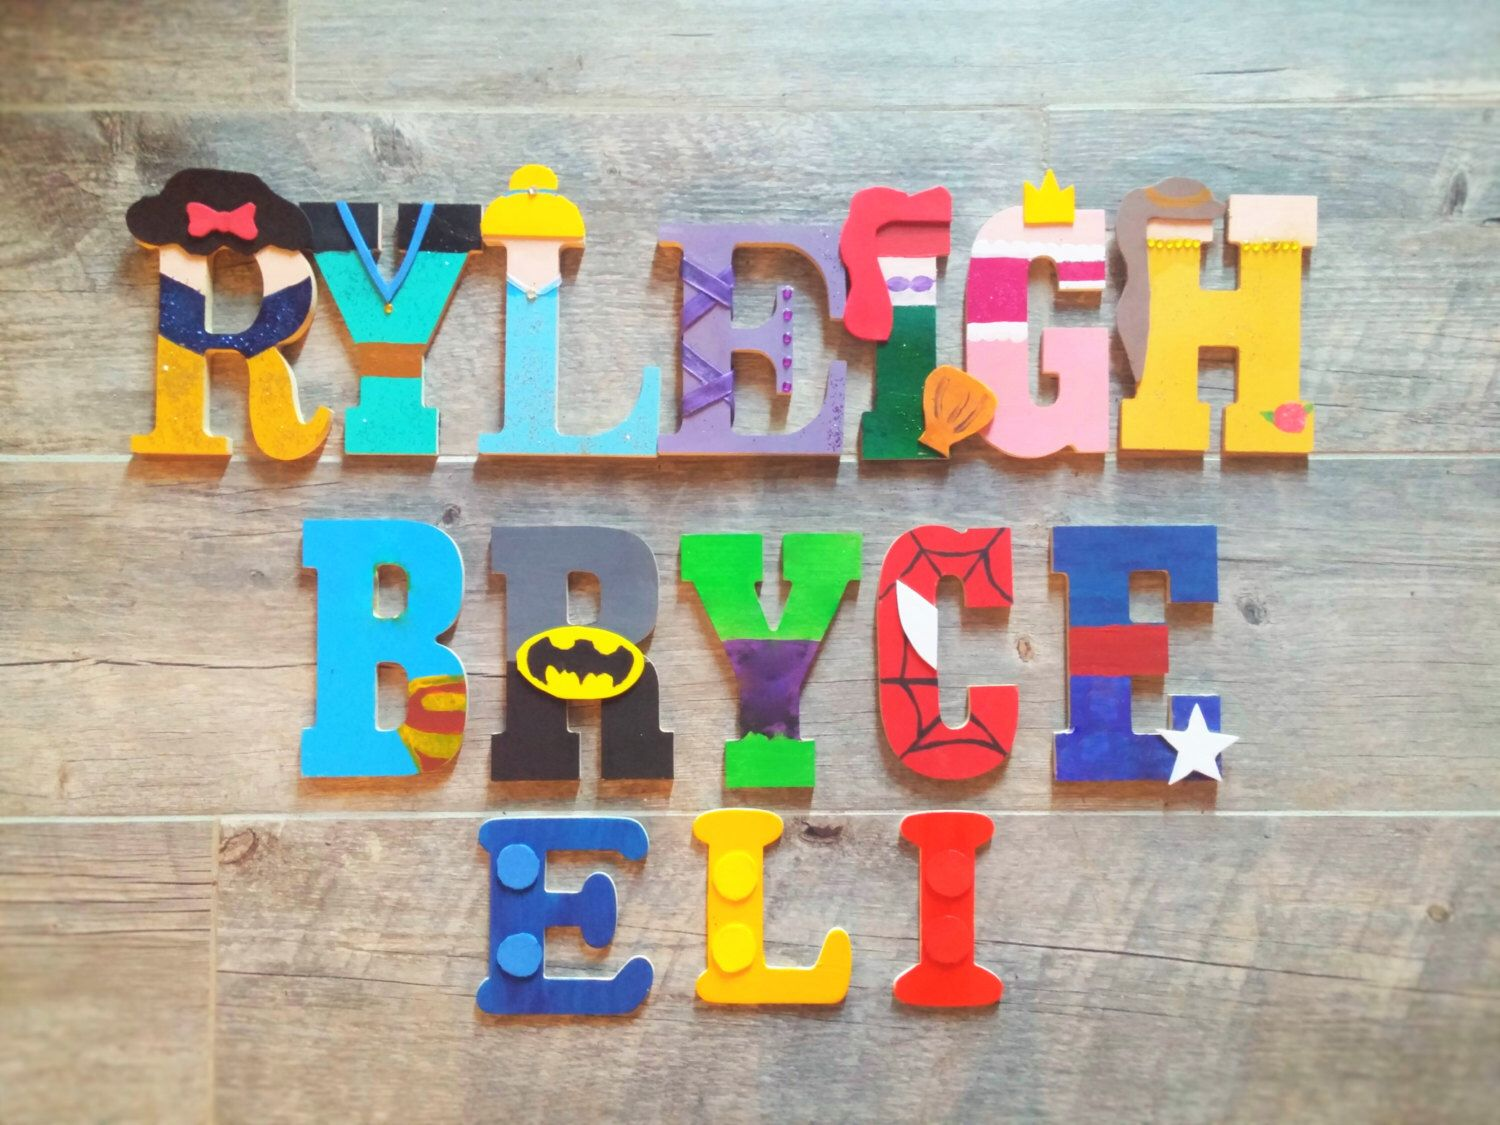 Lego Bedroom Decor Handpainted Wall Letters Best Selling Kids Room Decor Marvel